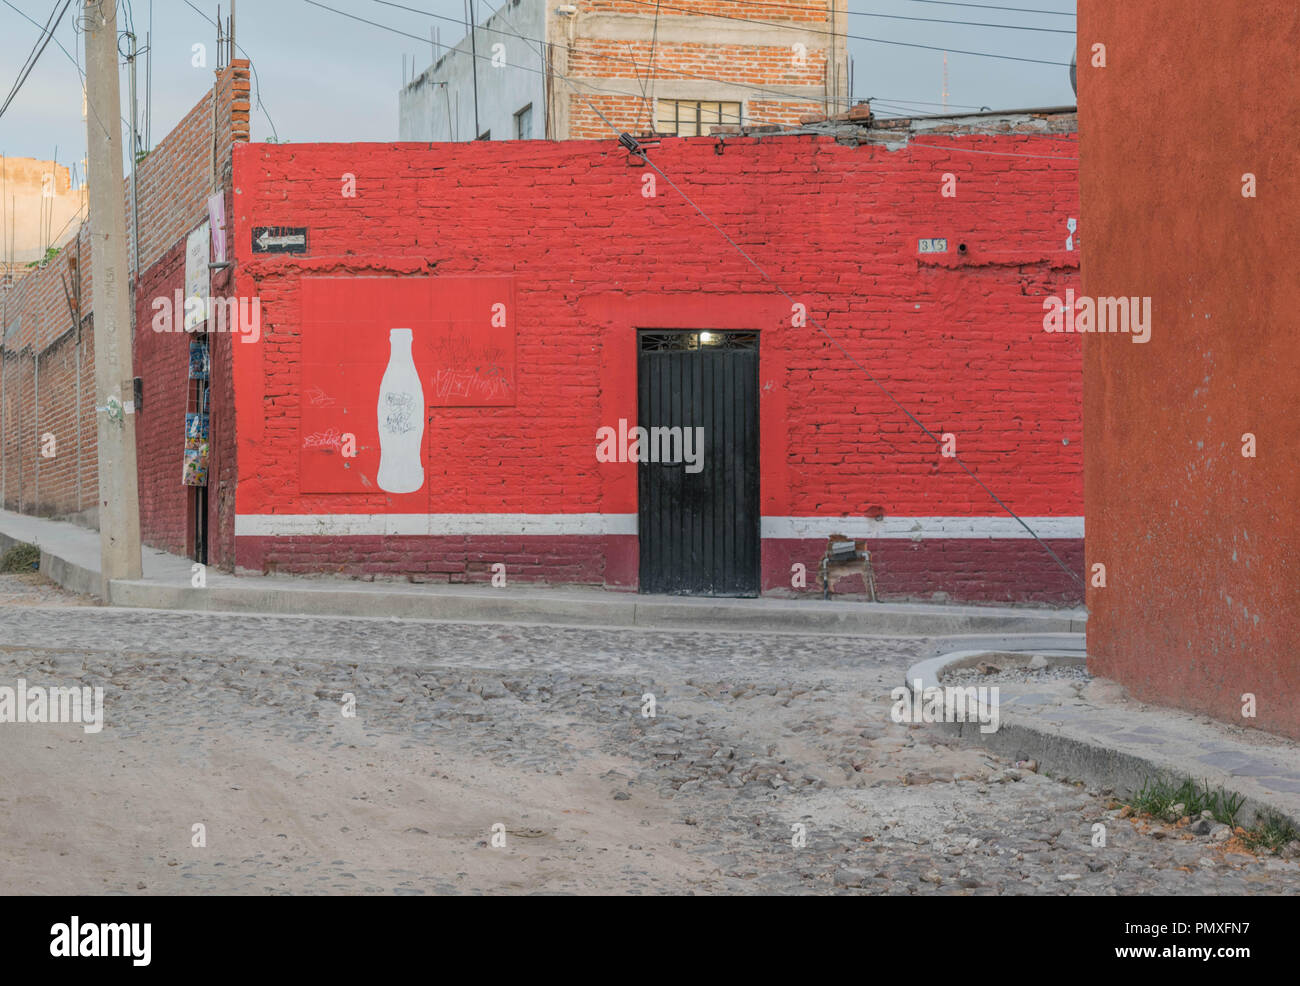 A store front with a red wall and a cola bottle painting in white, and a cobblestone street. On a street corner in San Miguel de Allende, Mexico. Stock Photo